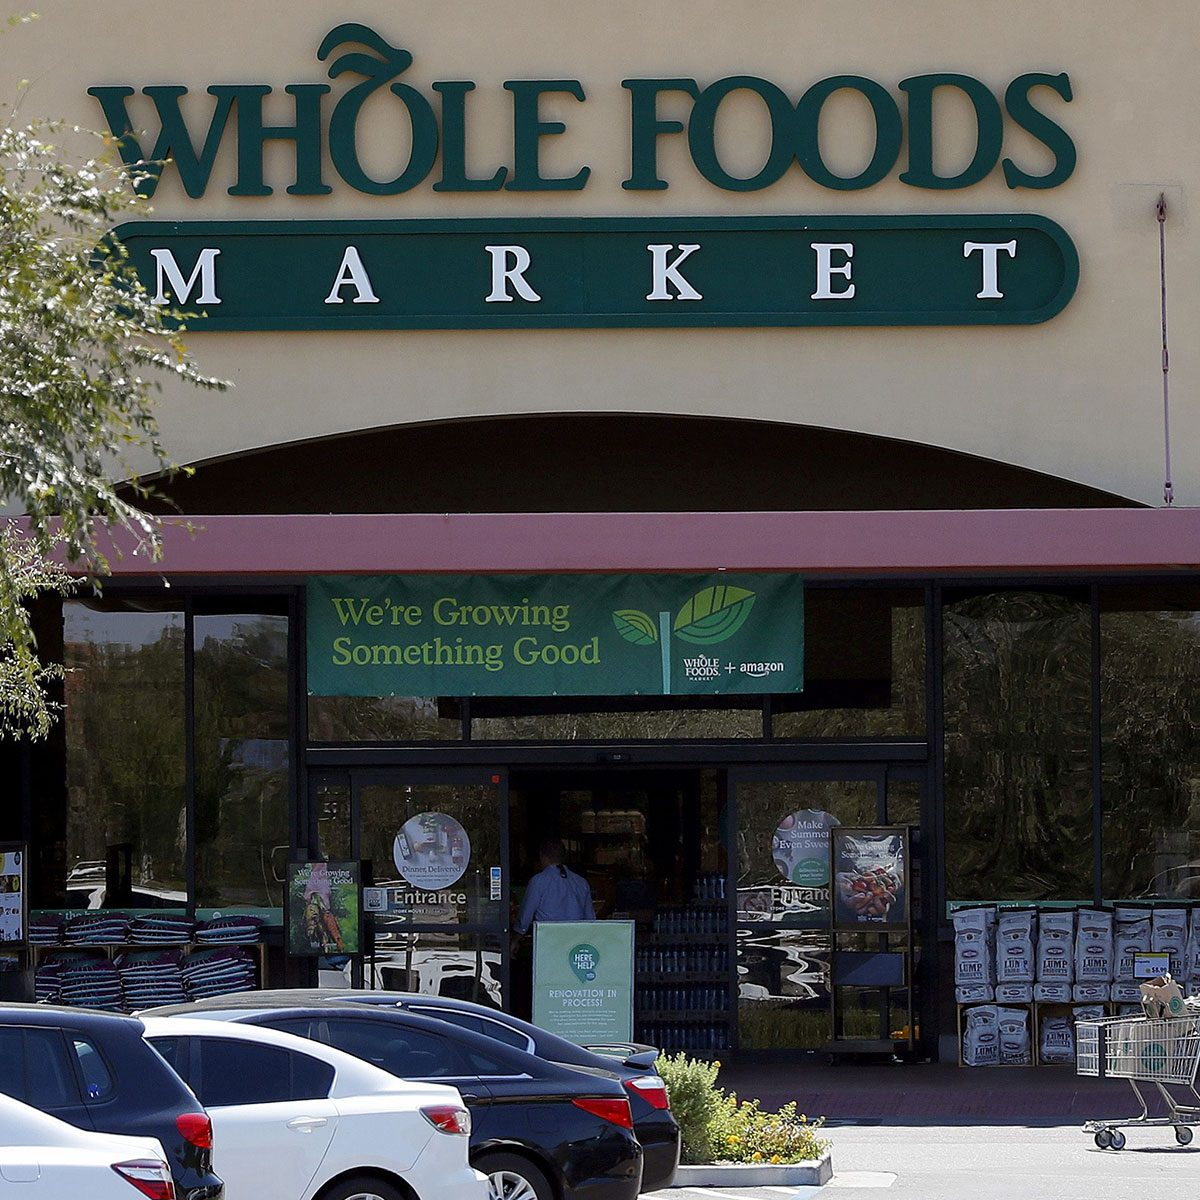 Here's Why You Should Be Skeptical of the Whole Foods Price Drop